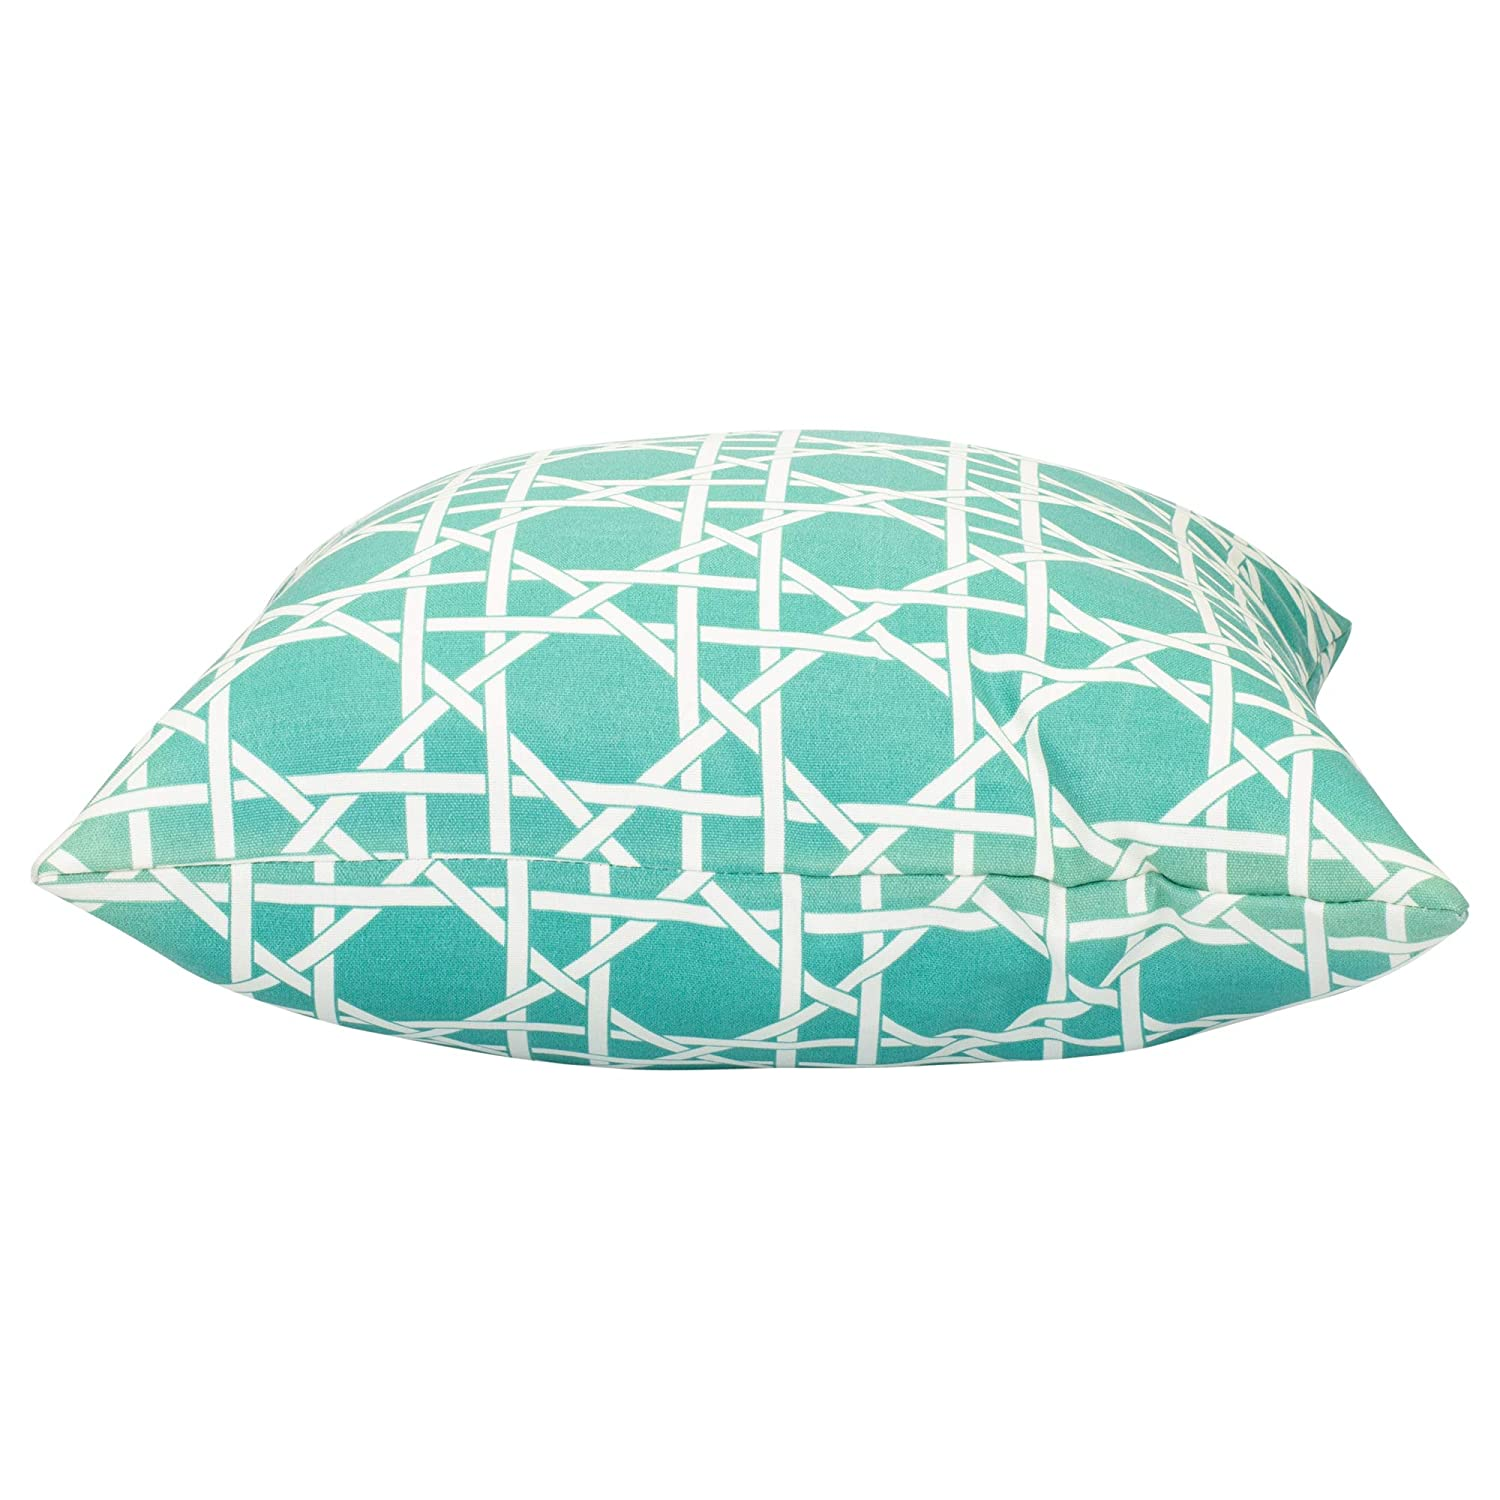 Kane Teal Blue and Beige Weave Print 16 x 16 Indoor Outdoor Throw Pillow